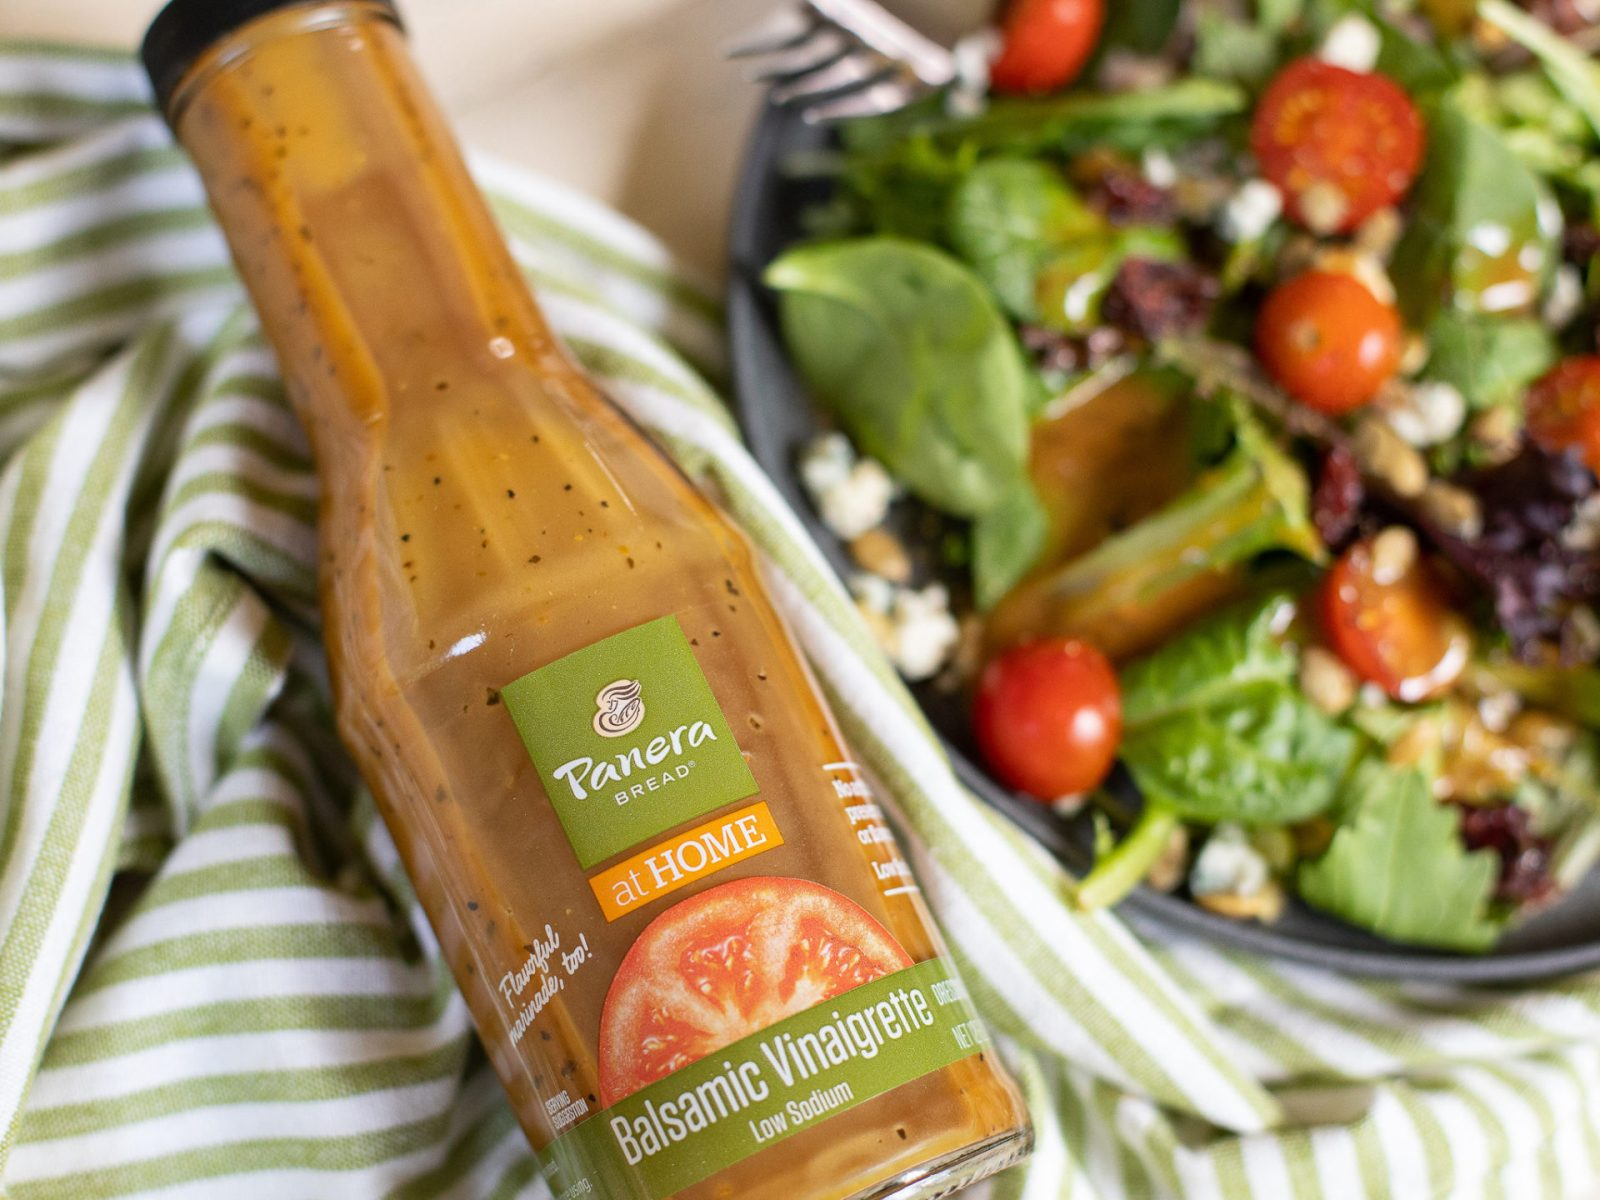 Panera Bread Salad Dressing As Low As $2 At Publix on I Heart Publix